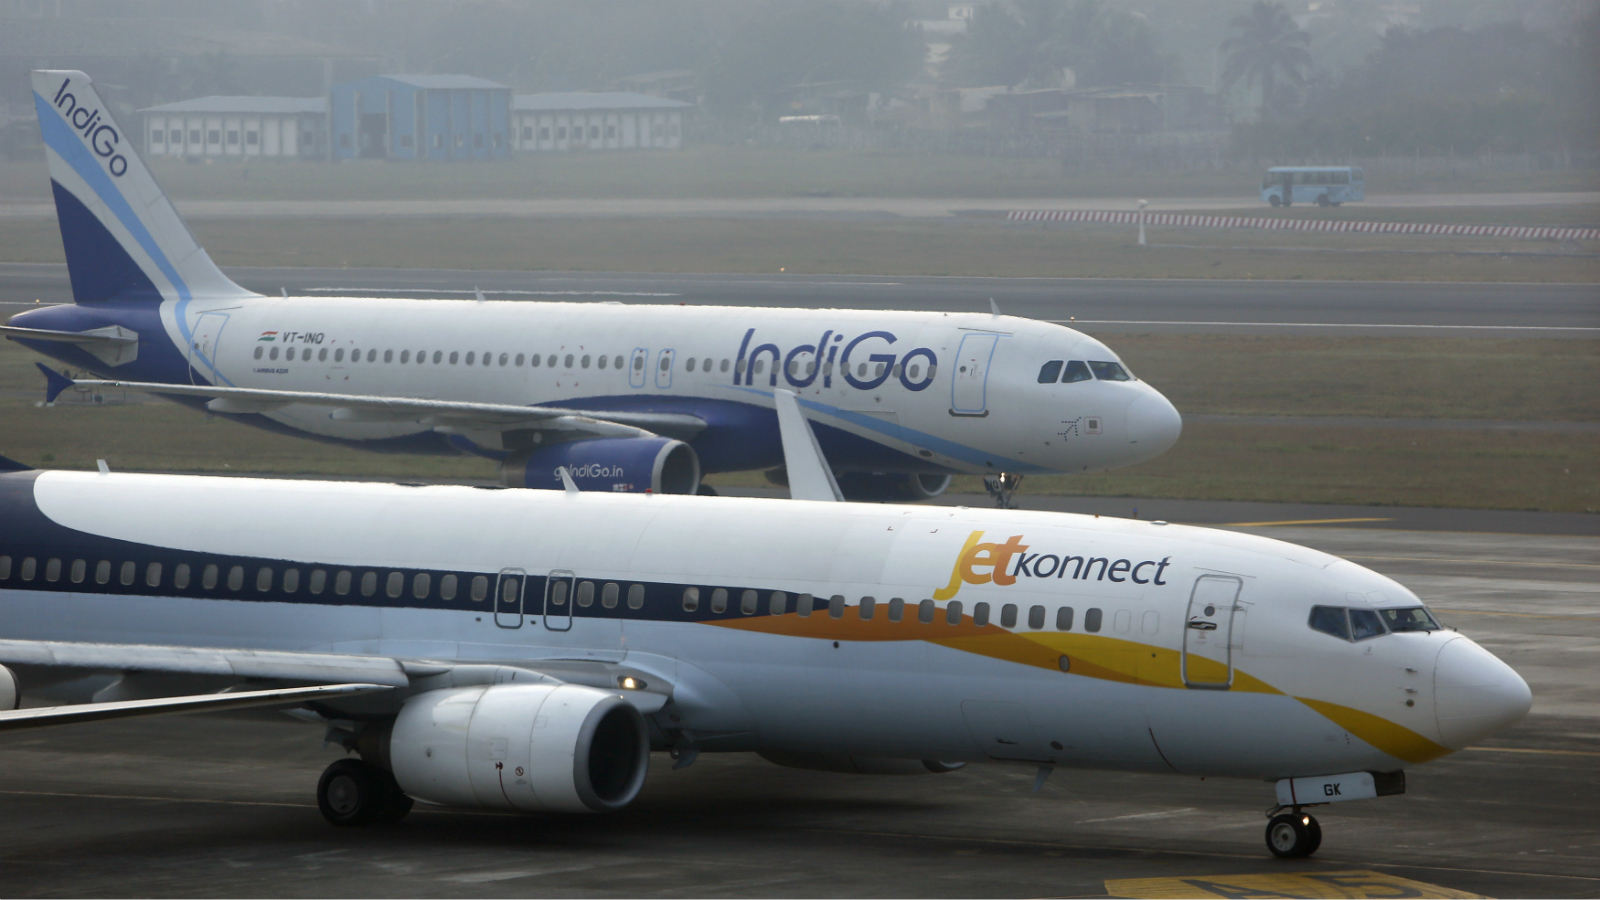 An IndiGo Airlines Airbust A320 aircraft and JetKonnect Boeing 737 aircraft taxi at Mumbai's Chhatrapathi Shivaji International Airport February 3, 2013. Picture taken February 3, 2013.